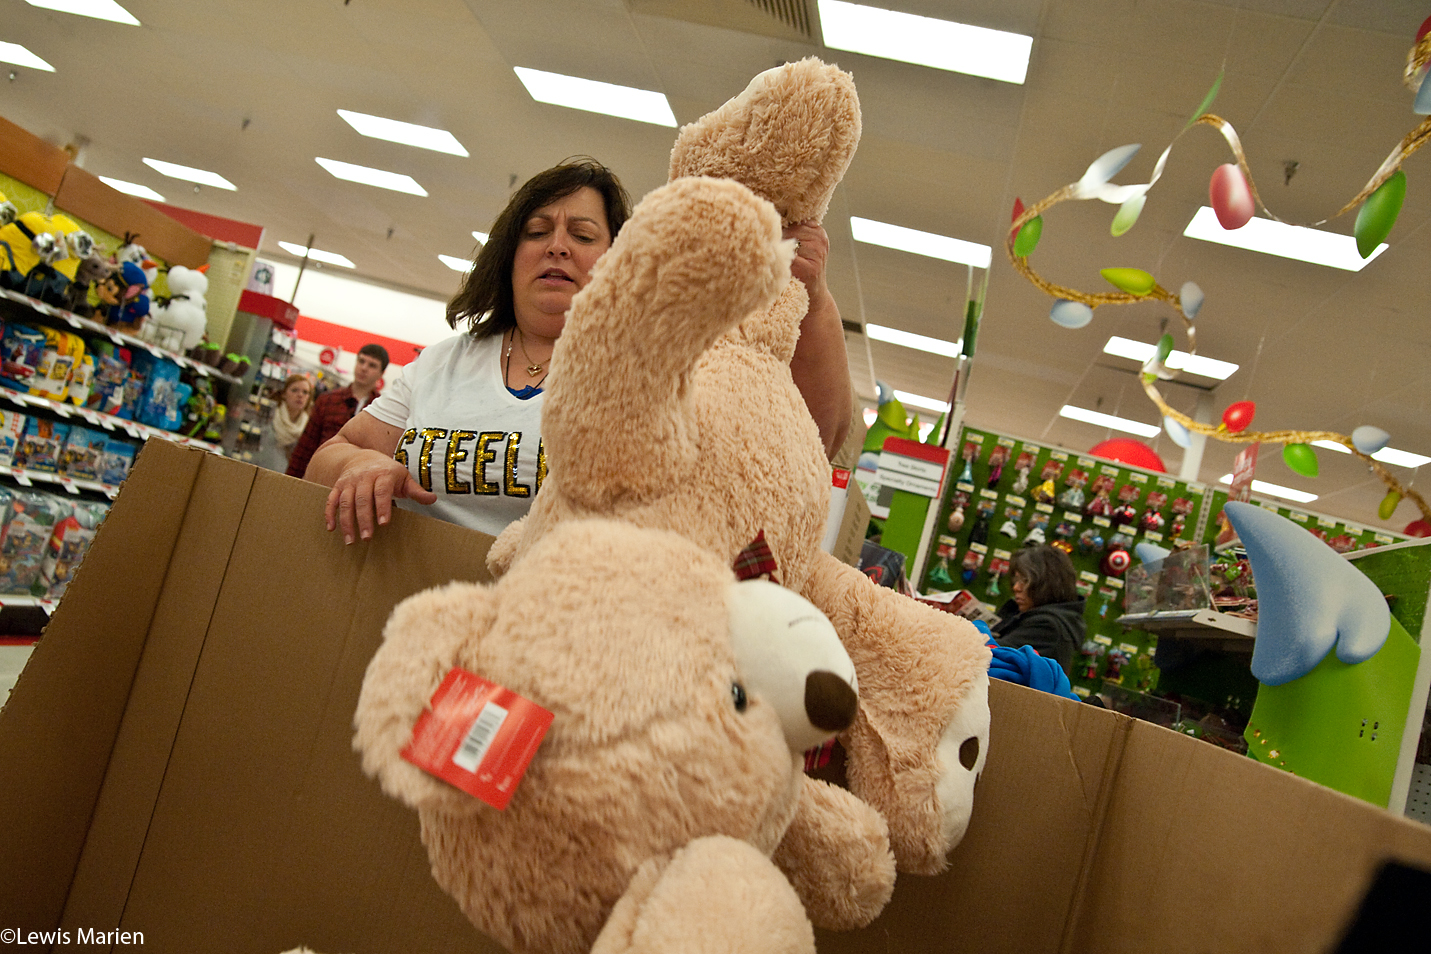 Angie Craig of Wataga eyes a 36-inch giant plush bear while shopping on Thanksgiving evening, Nov. 26, at Target in Galesburg, Ill.